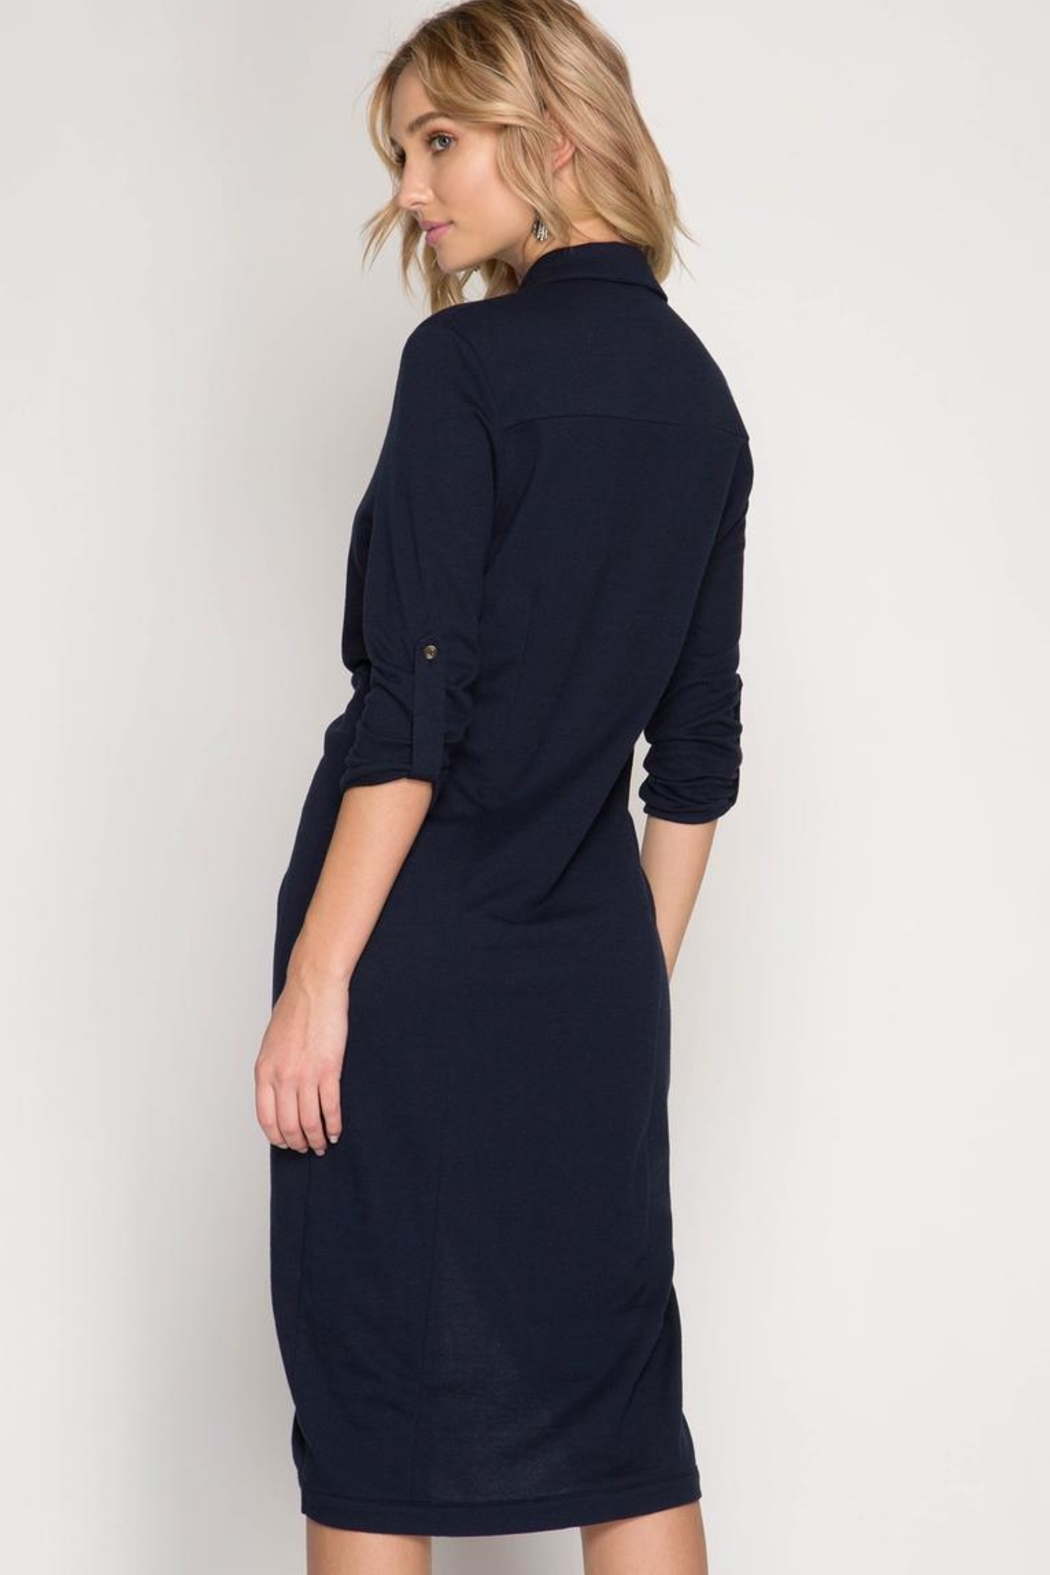 She + Sky Front Twist Dress - Front Full Image